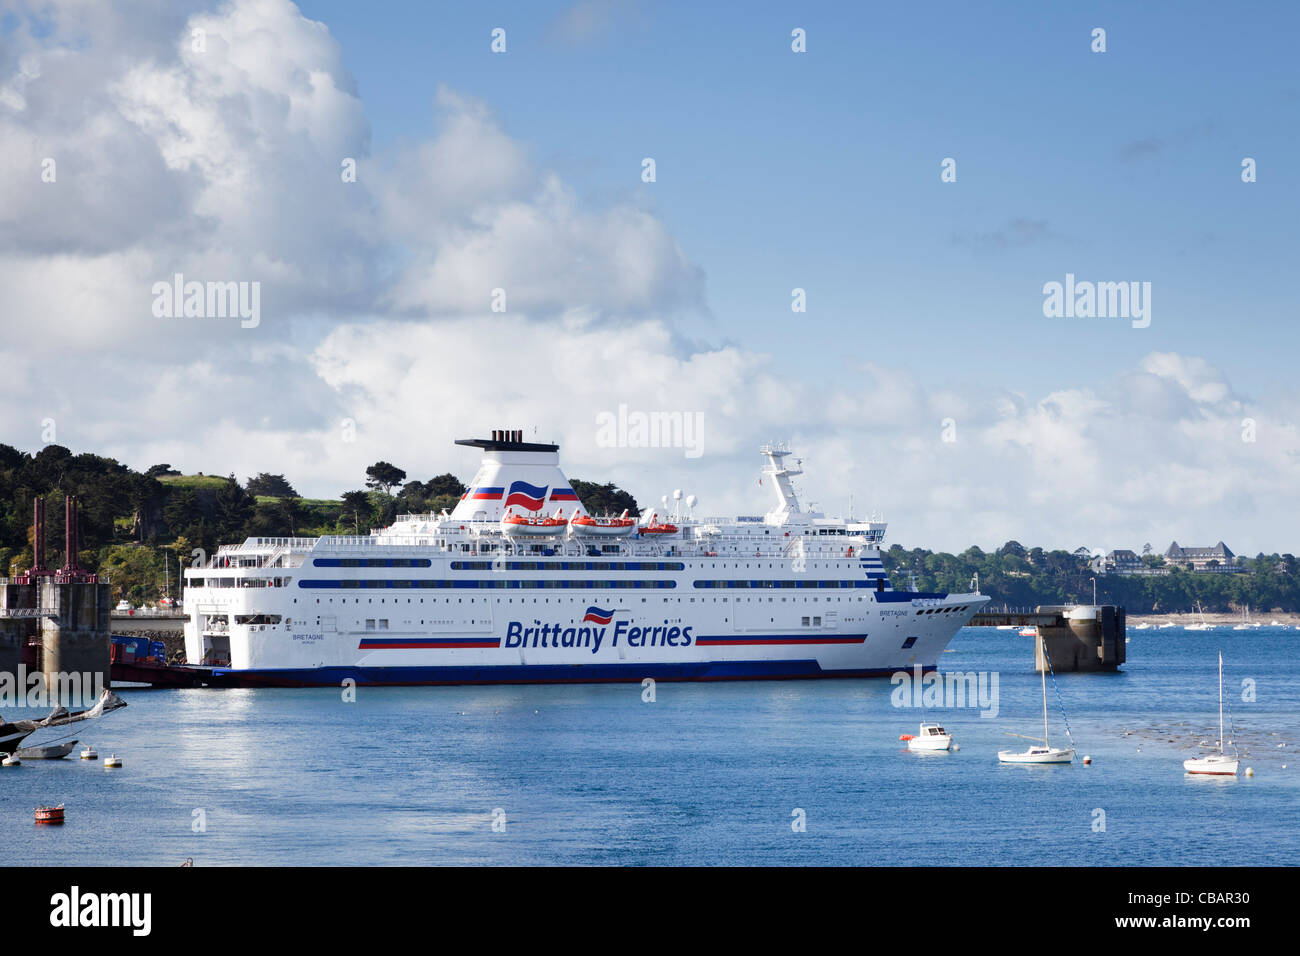 Docked Brittany Ferries car ferry - The Bretagne - moored at St Malo, France - Stock Image